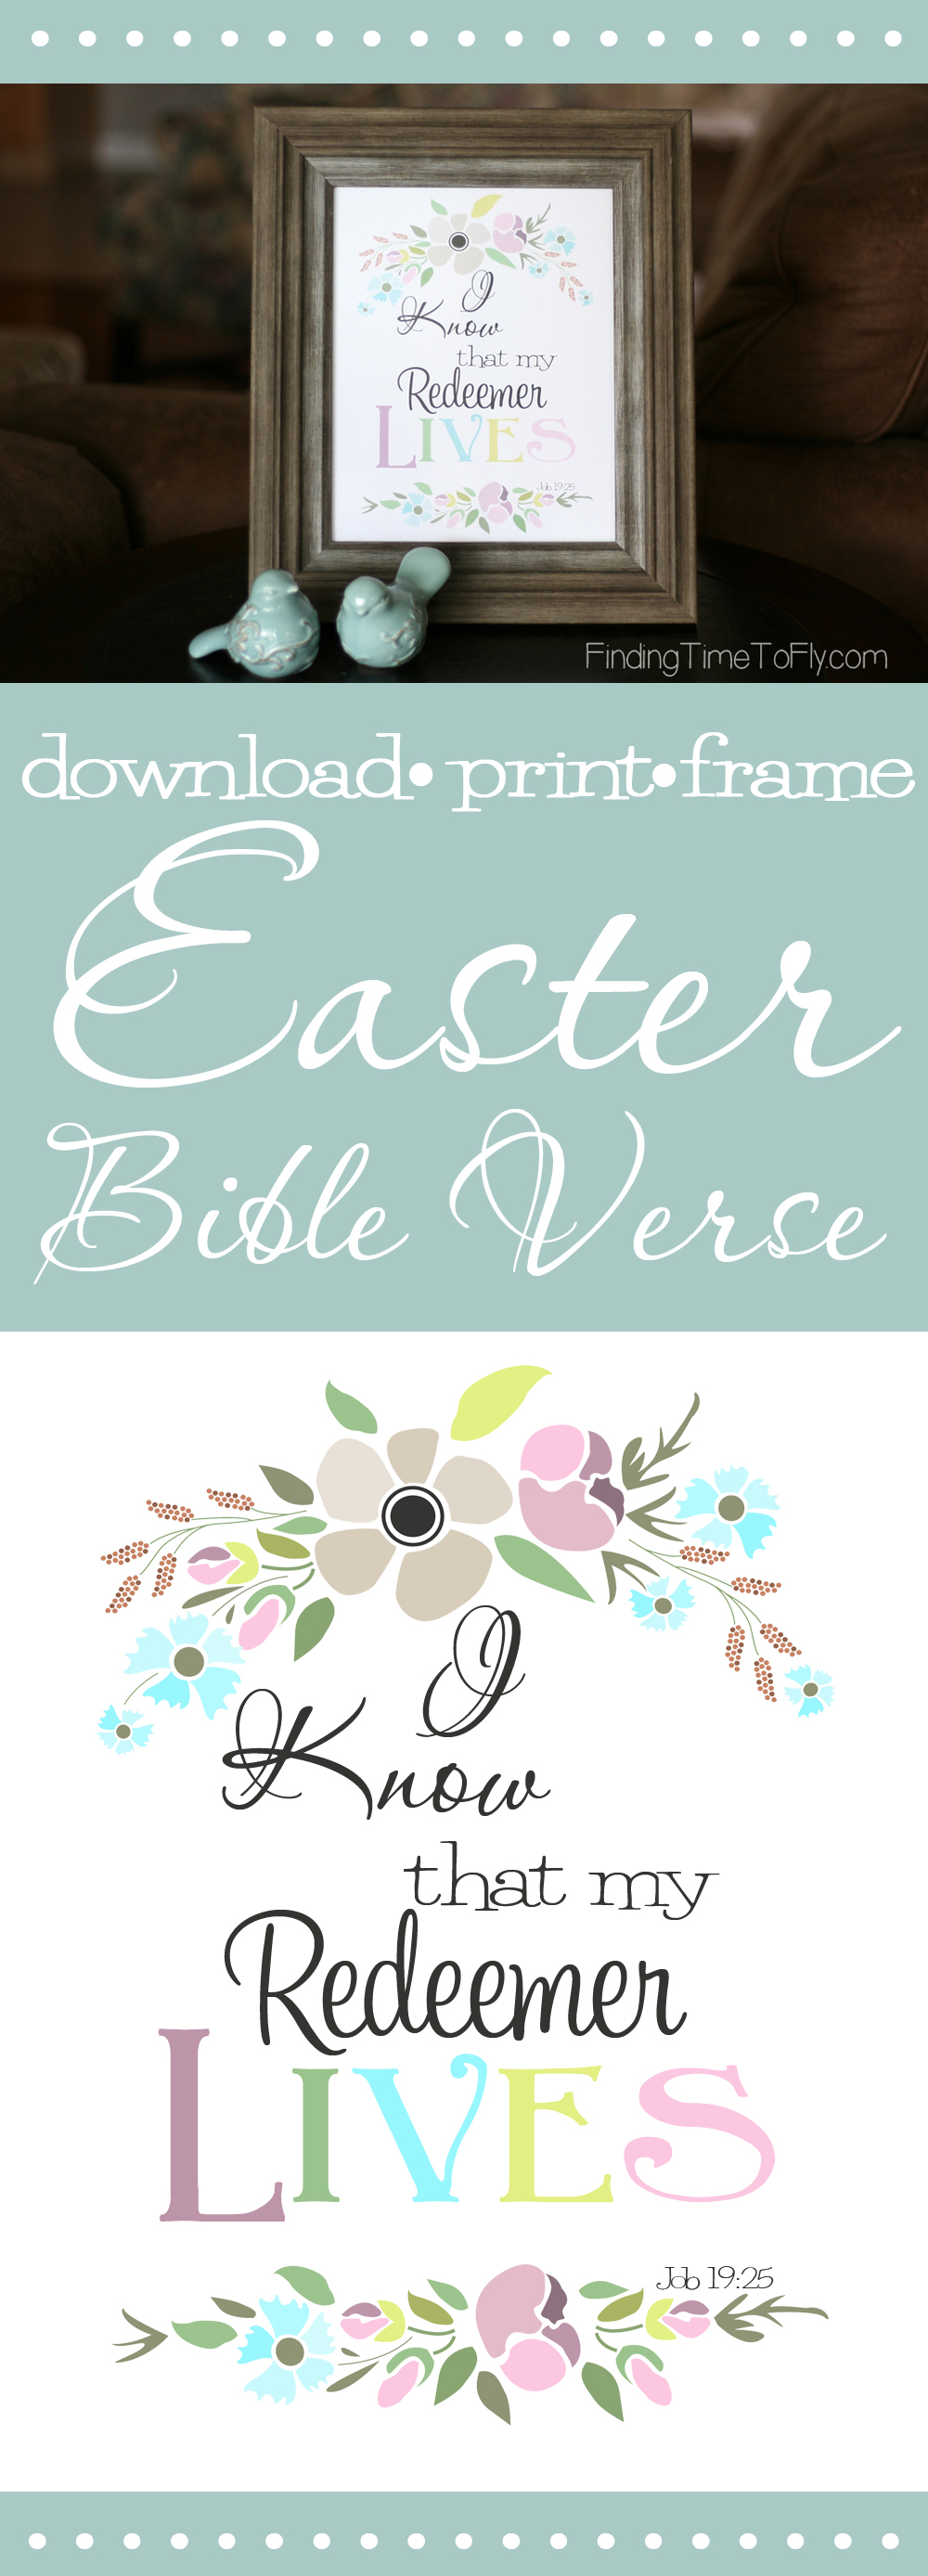 Love this printable Bible verse for Easter! My redeemer lives! Job 19:25